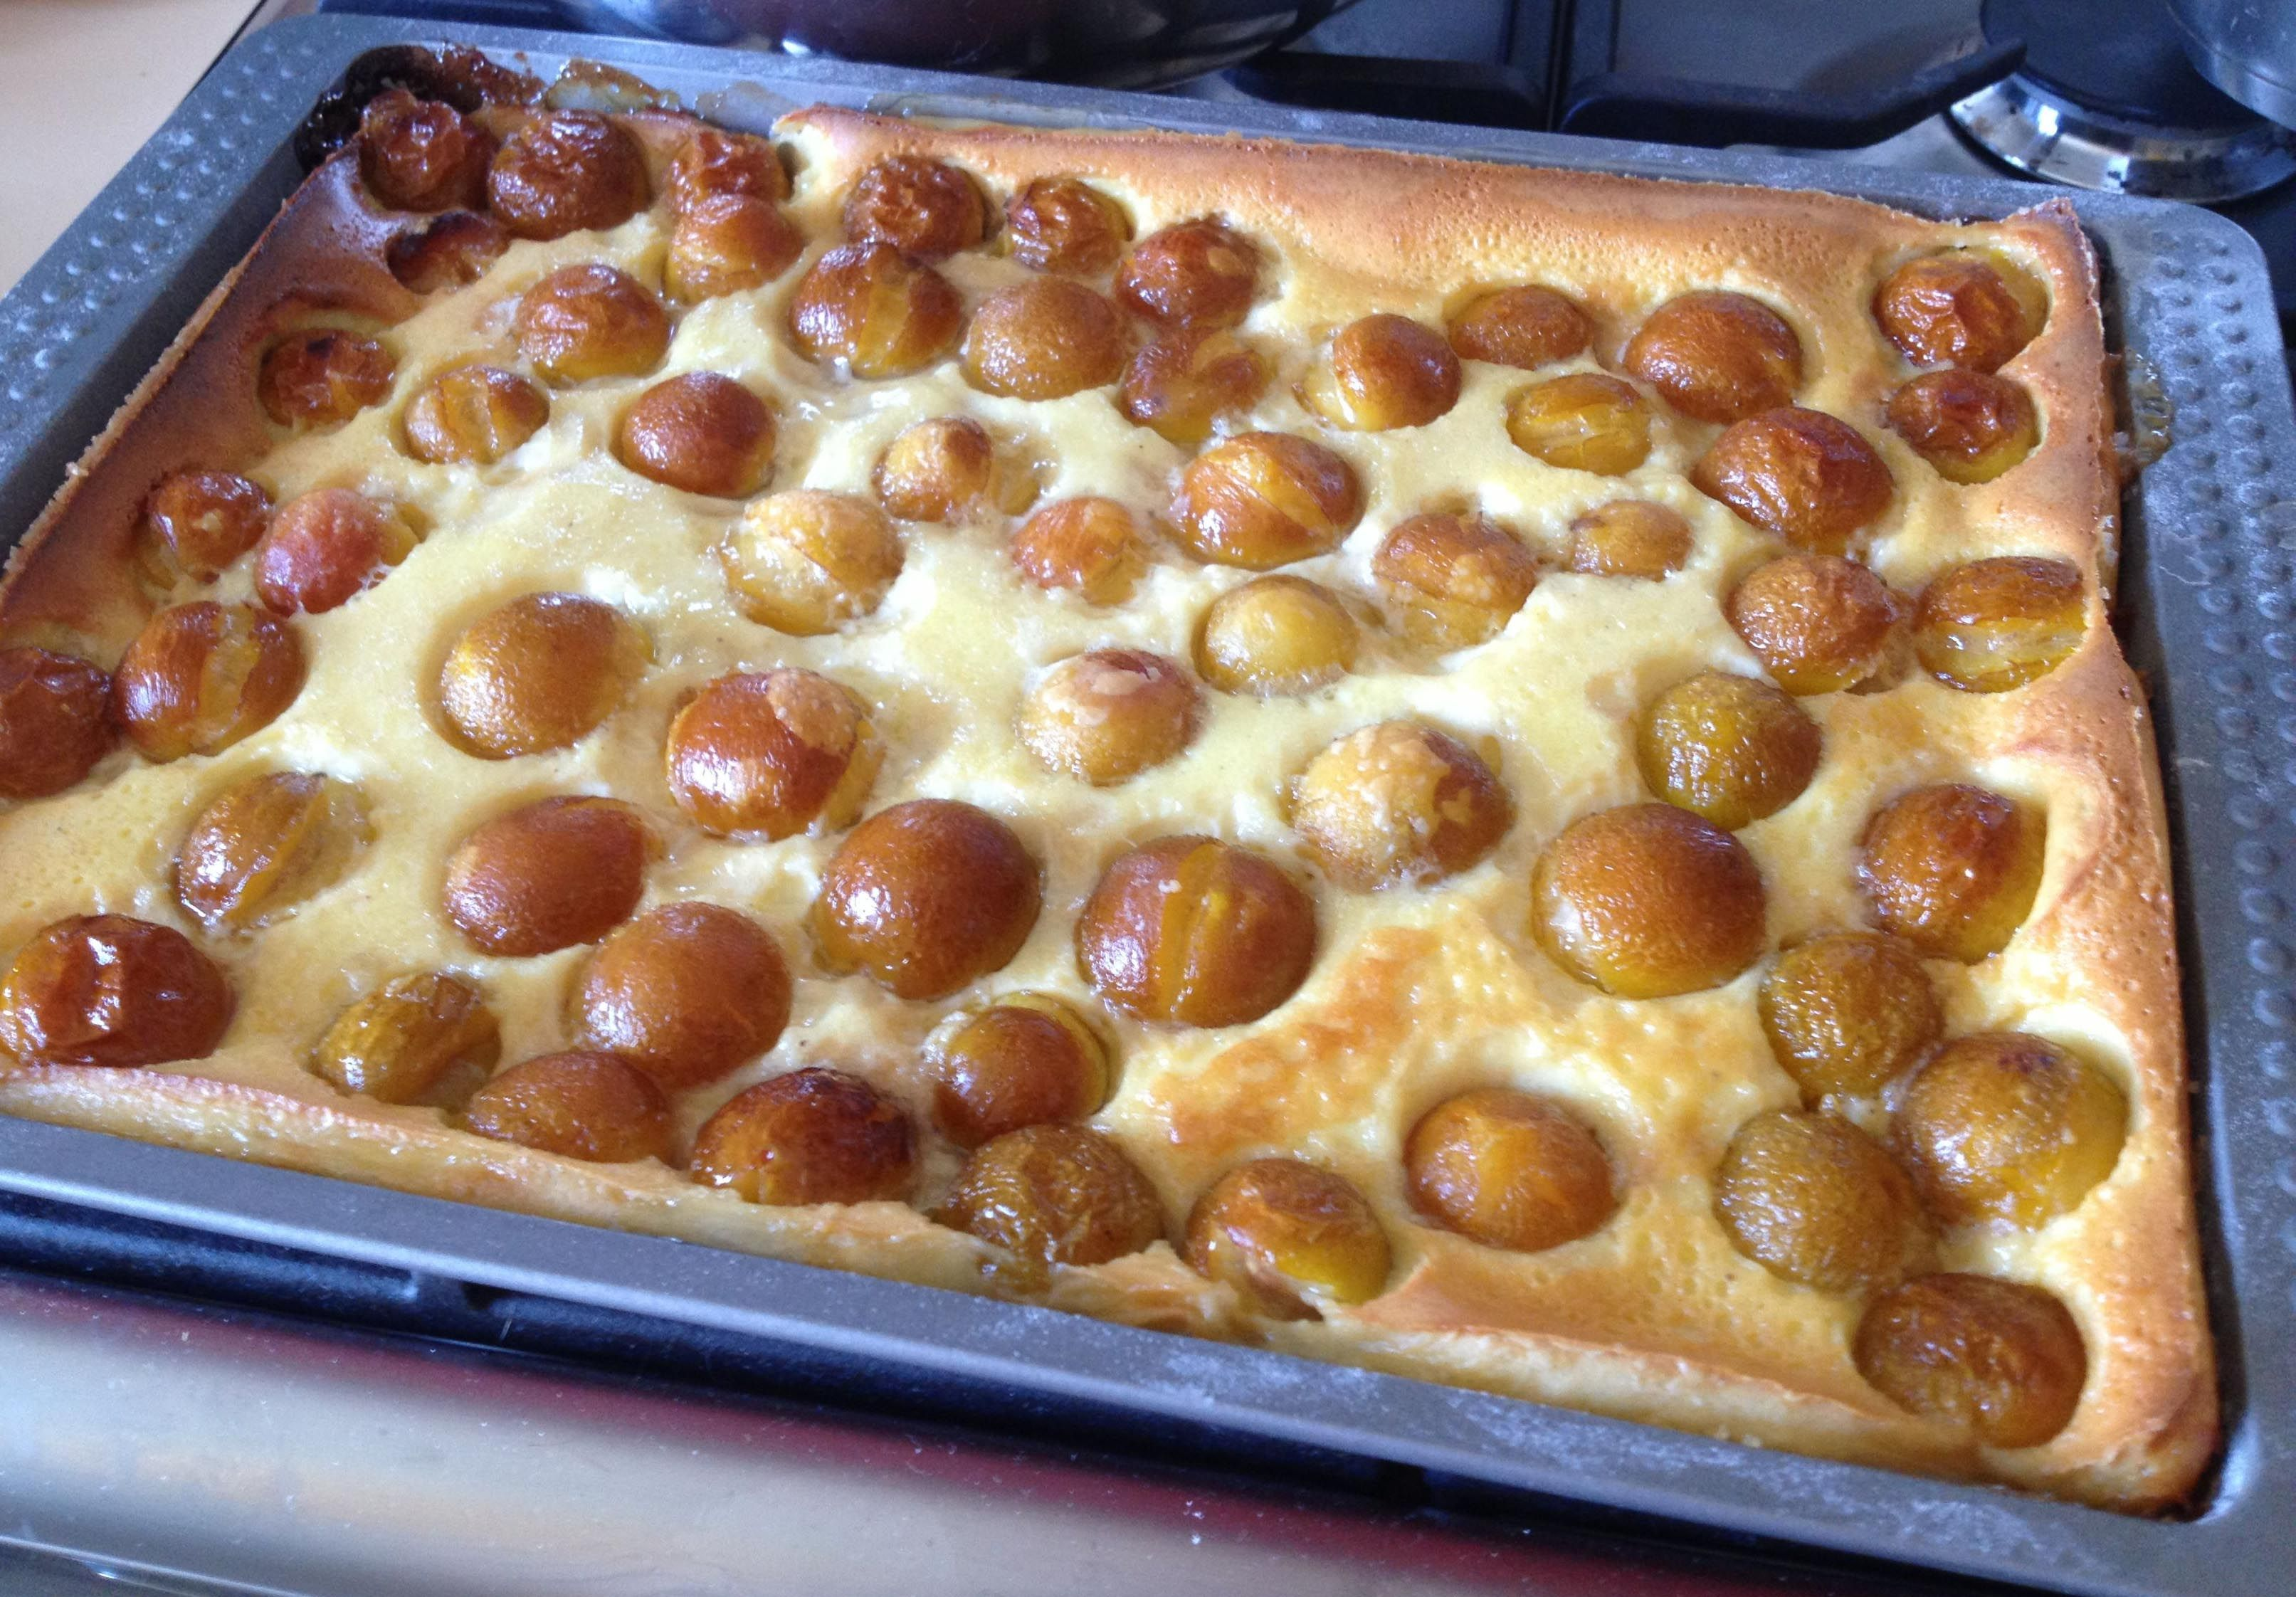 Clafoutis - from the Limousin region in France, which is known for 2 reasons: for being the name sake for big, long, black cars with darkened out windows and also for being the originator of the clafoutis, one of the most delicious desserts ever made in France!